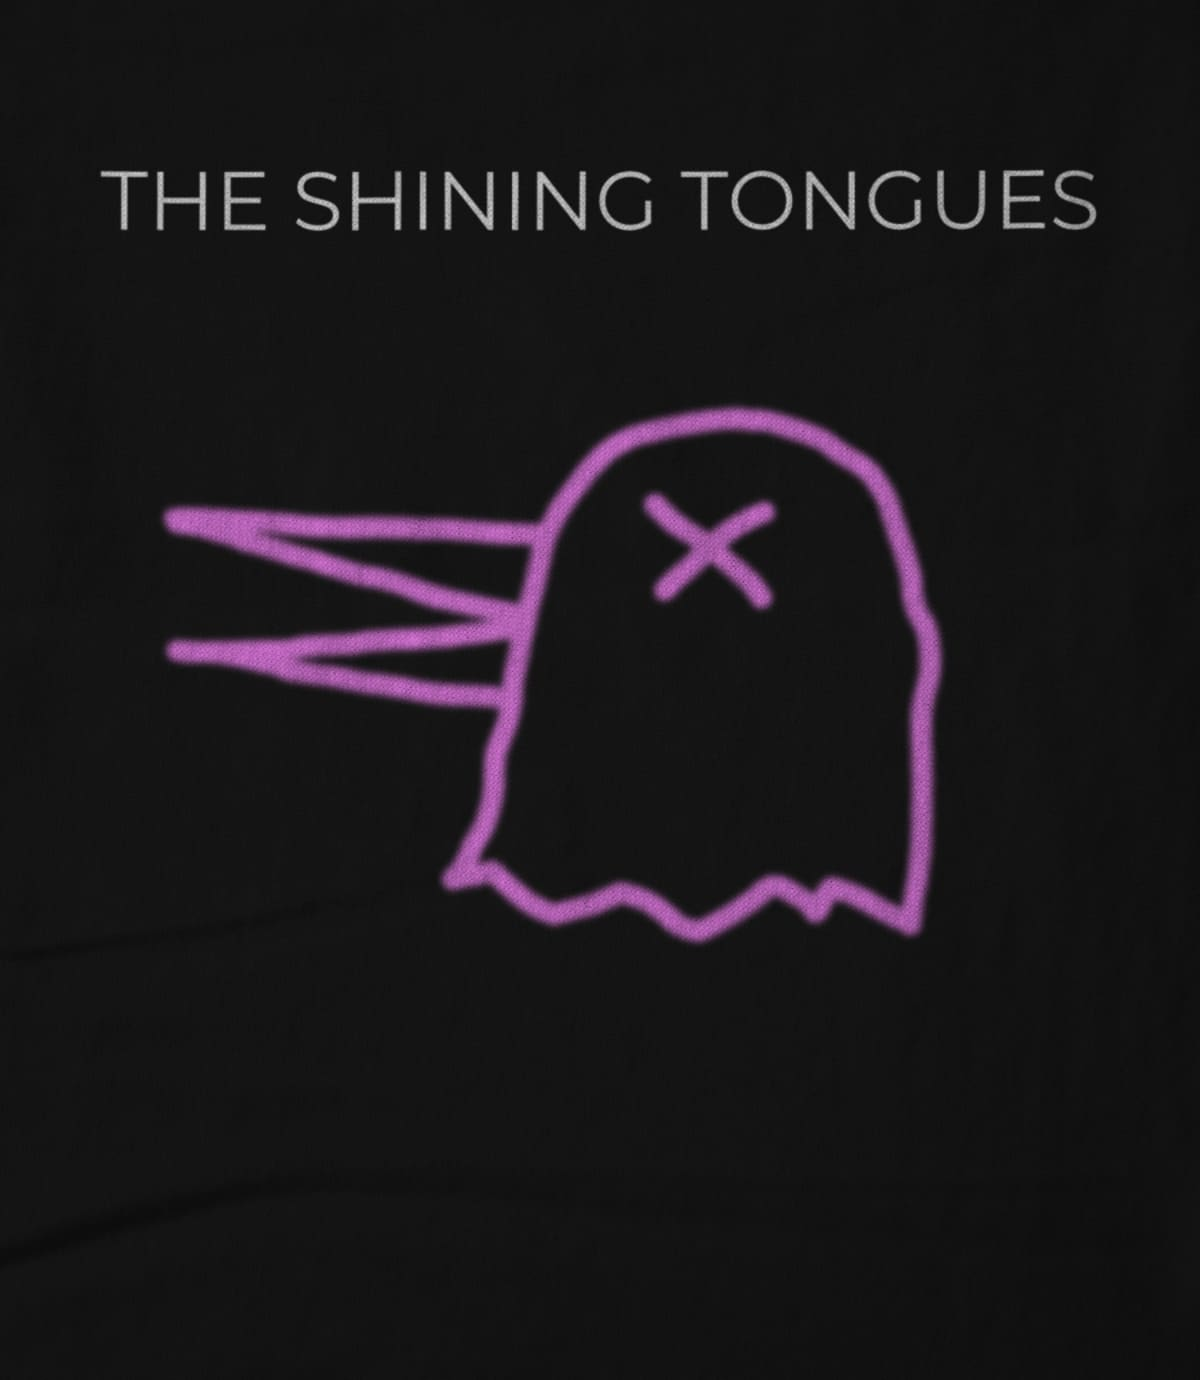 The Shining Tongues